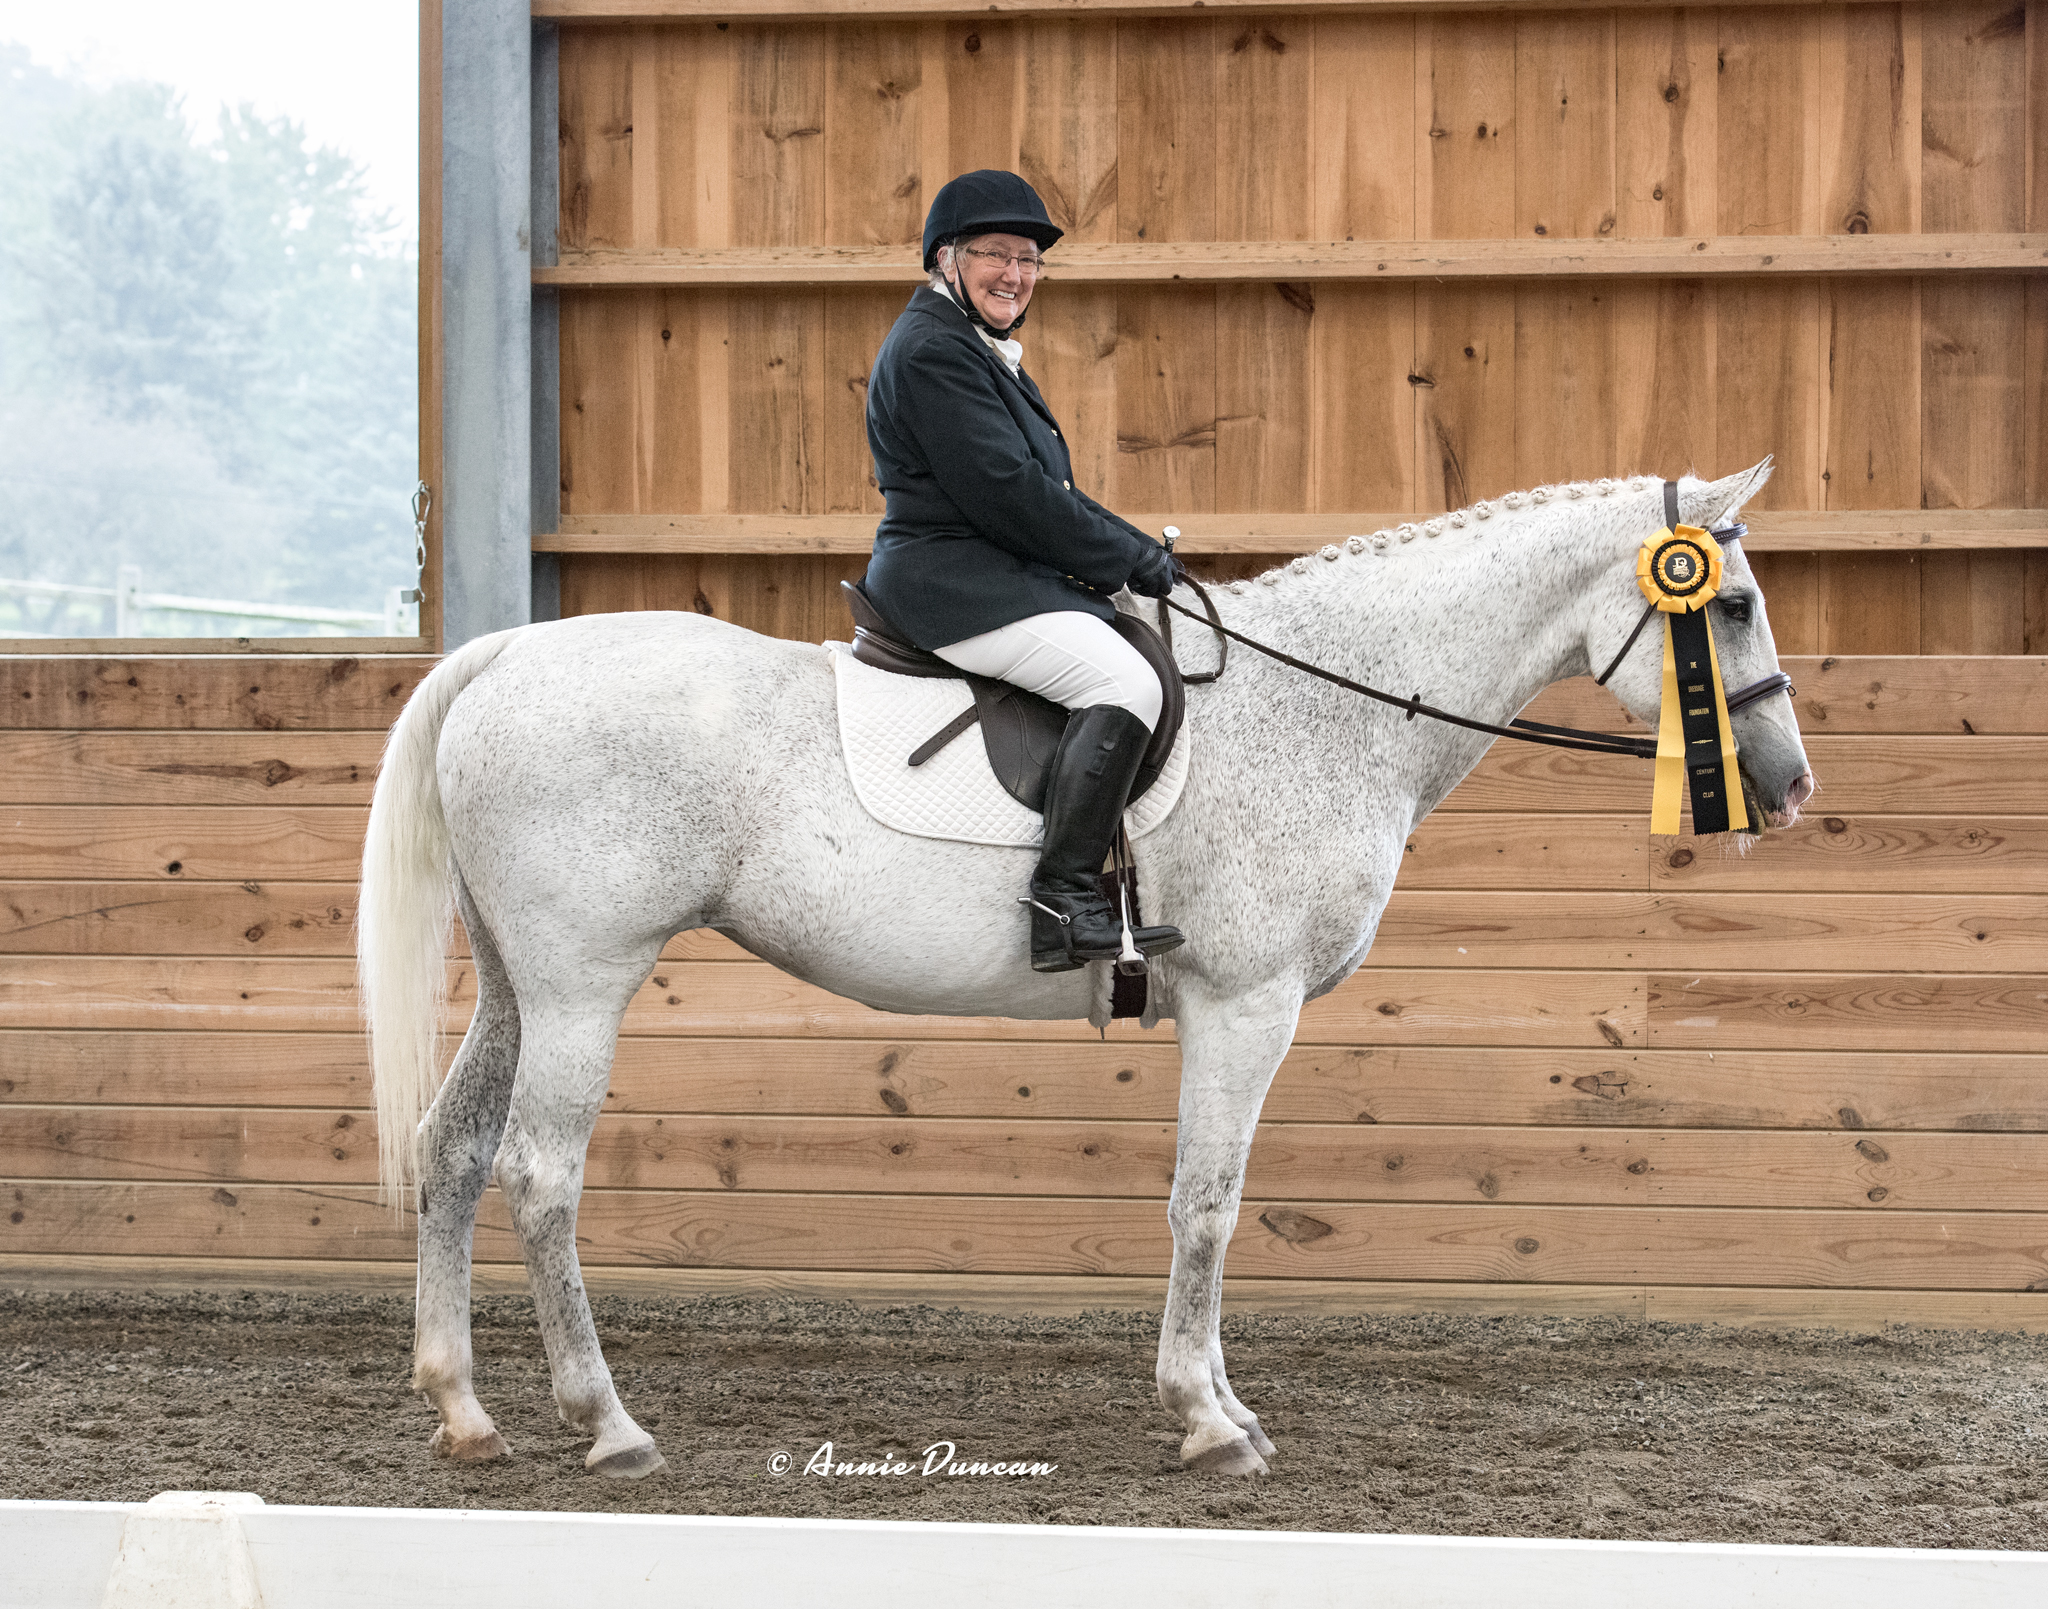 USDF Centennieal Club, Katherine Intano & Decor's Delight